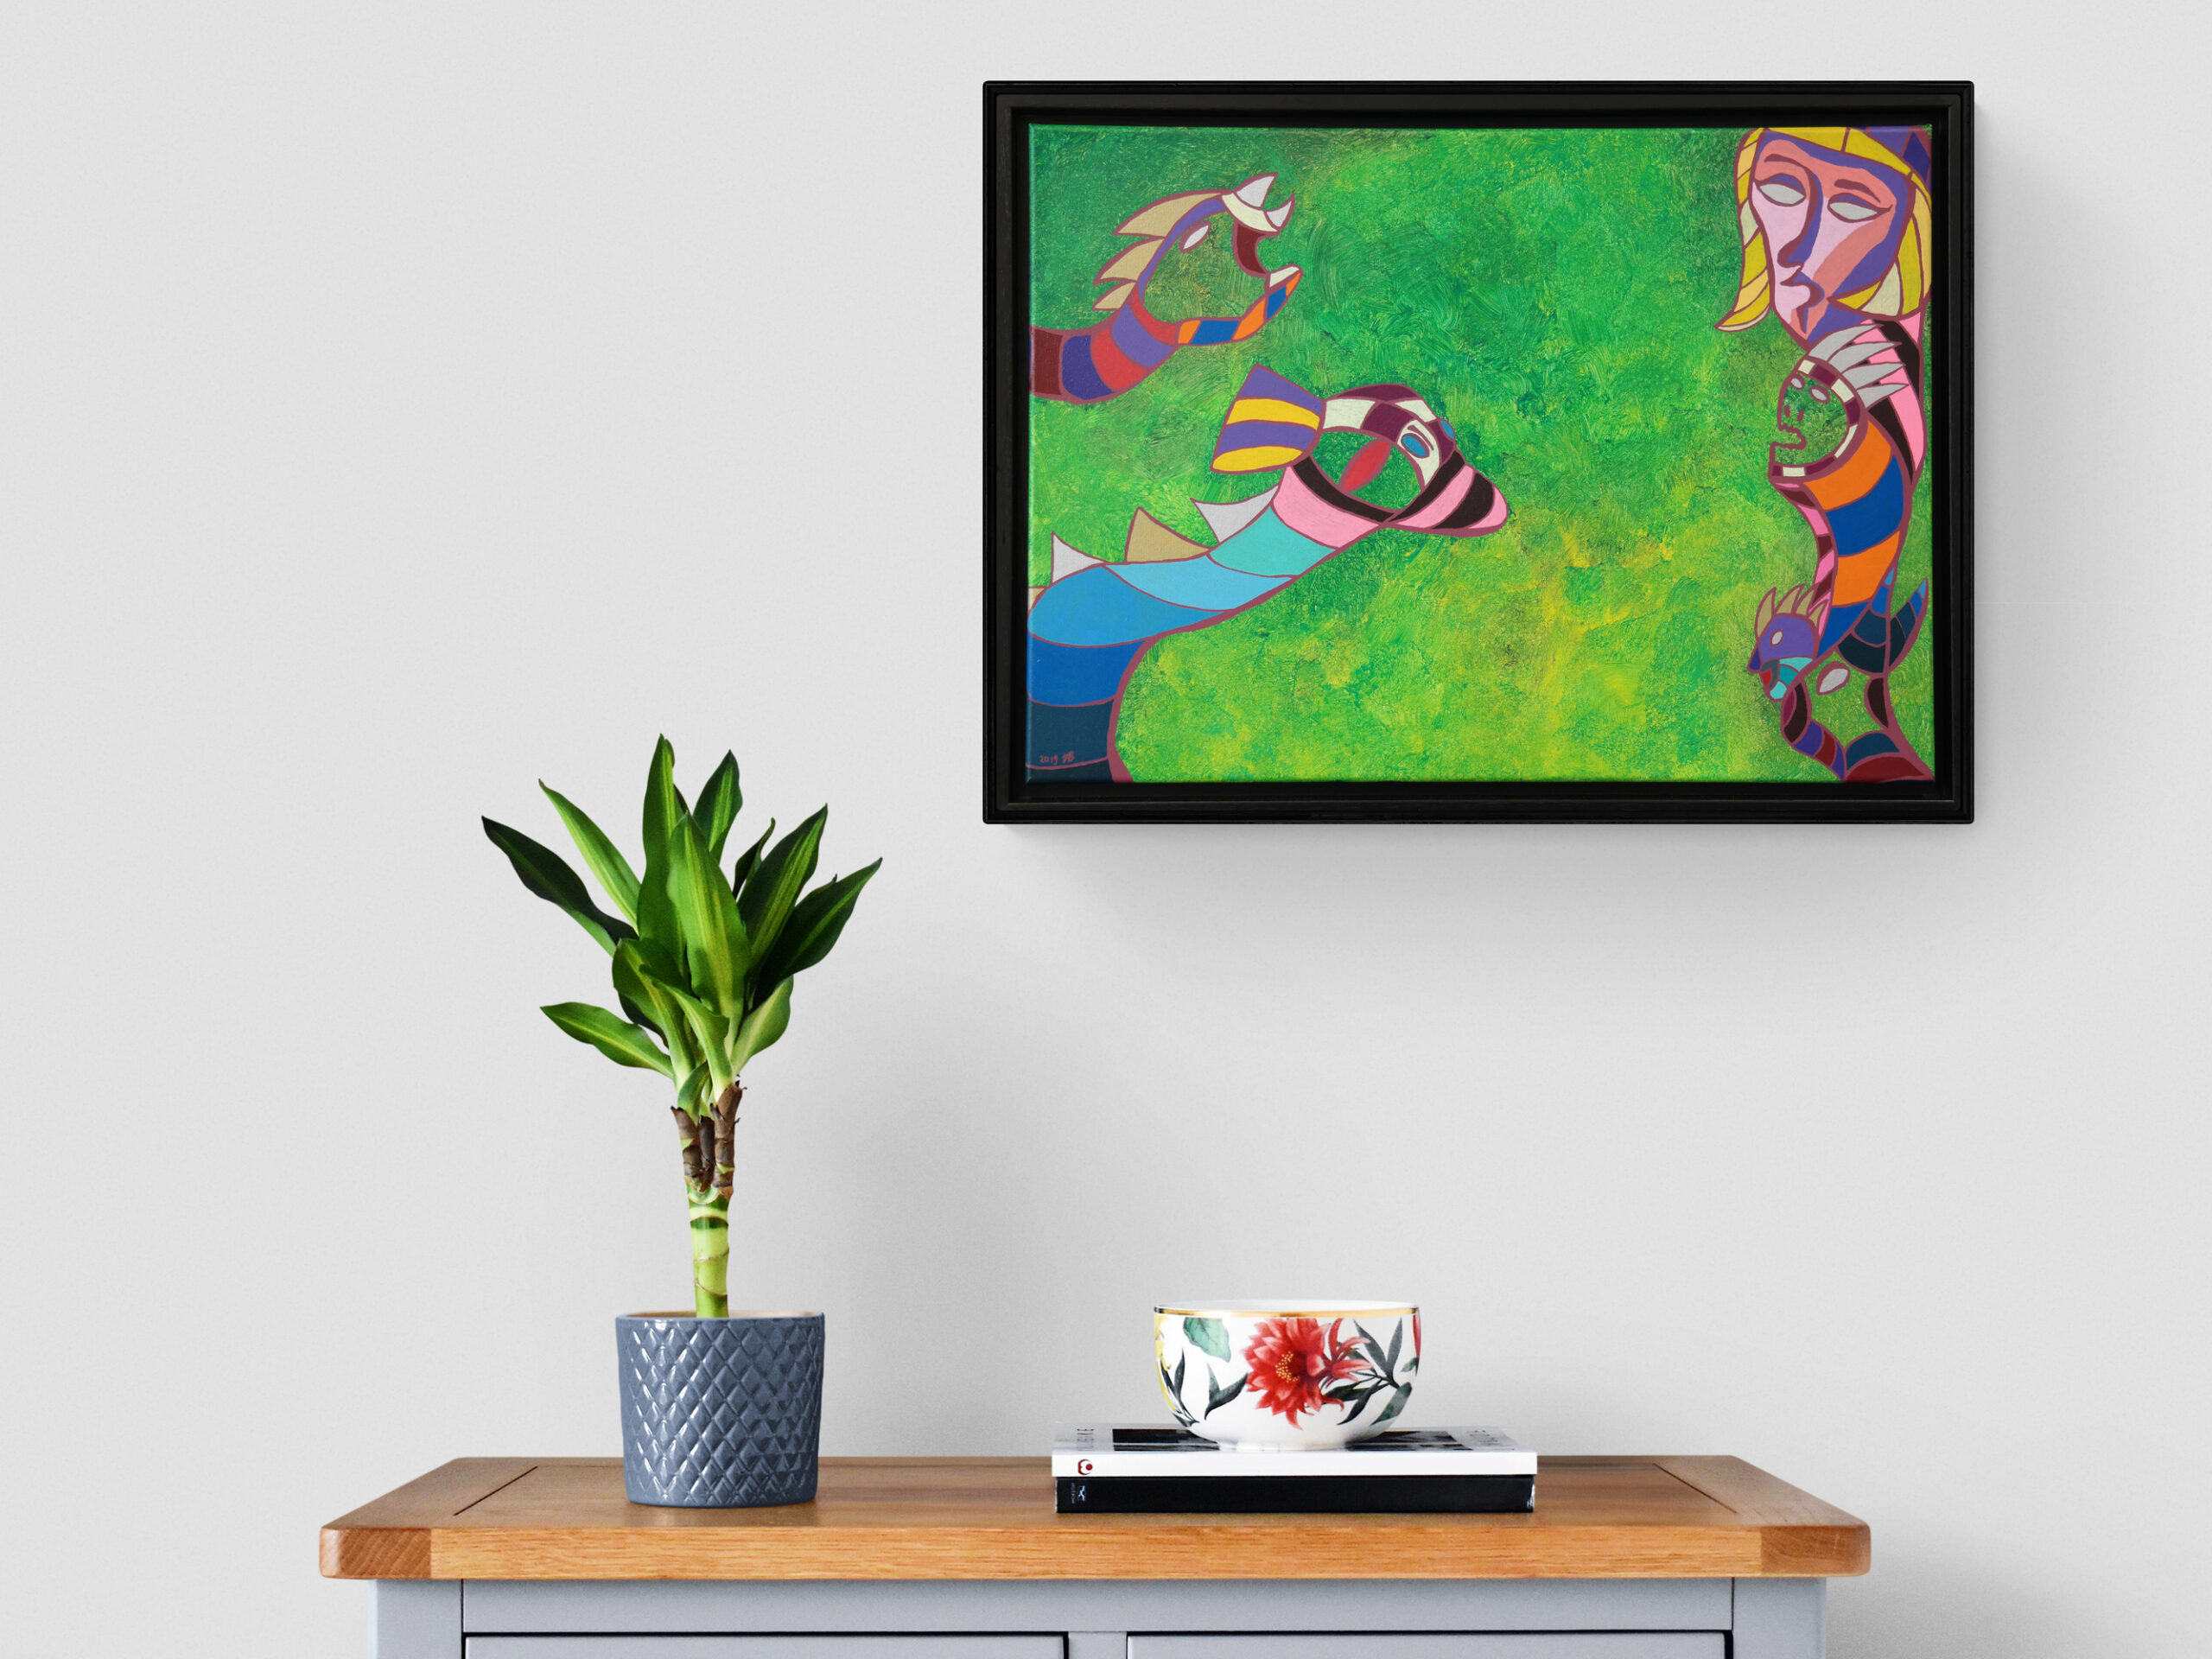 Grassland one in interior, a figurative abstract painting by Jasper Bos